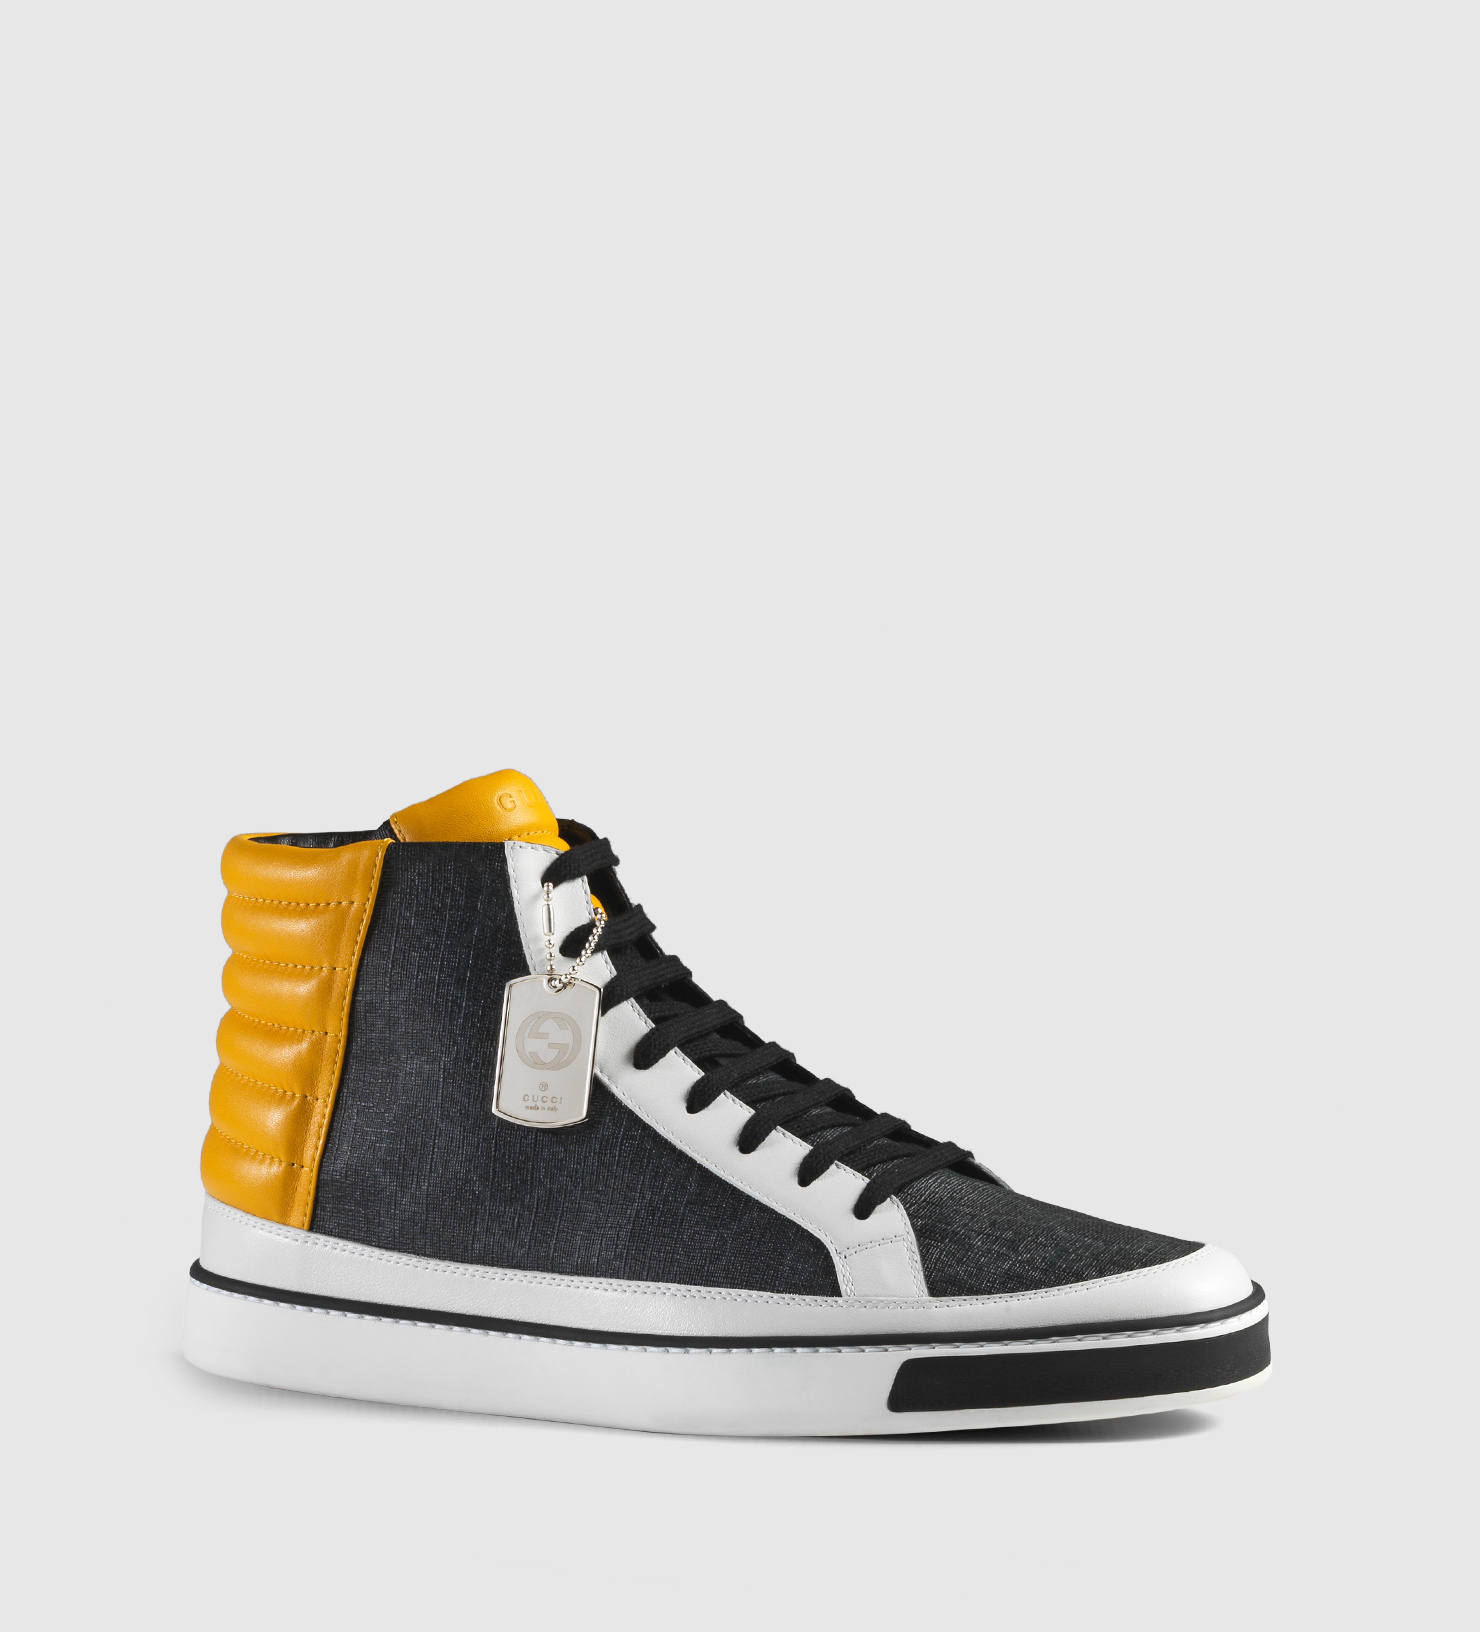 87cac8687dac2 Lyst - Gucci Gg Supreme And Leather High-top Sneaker in Gray for Men